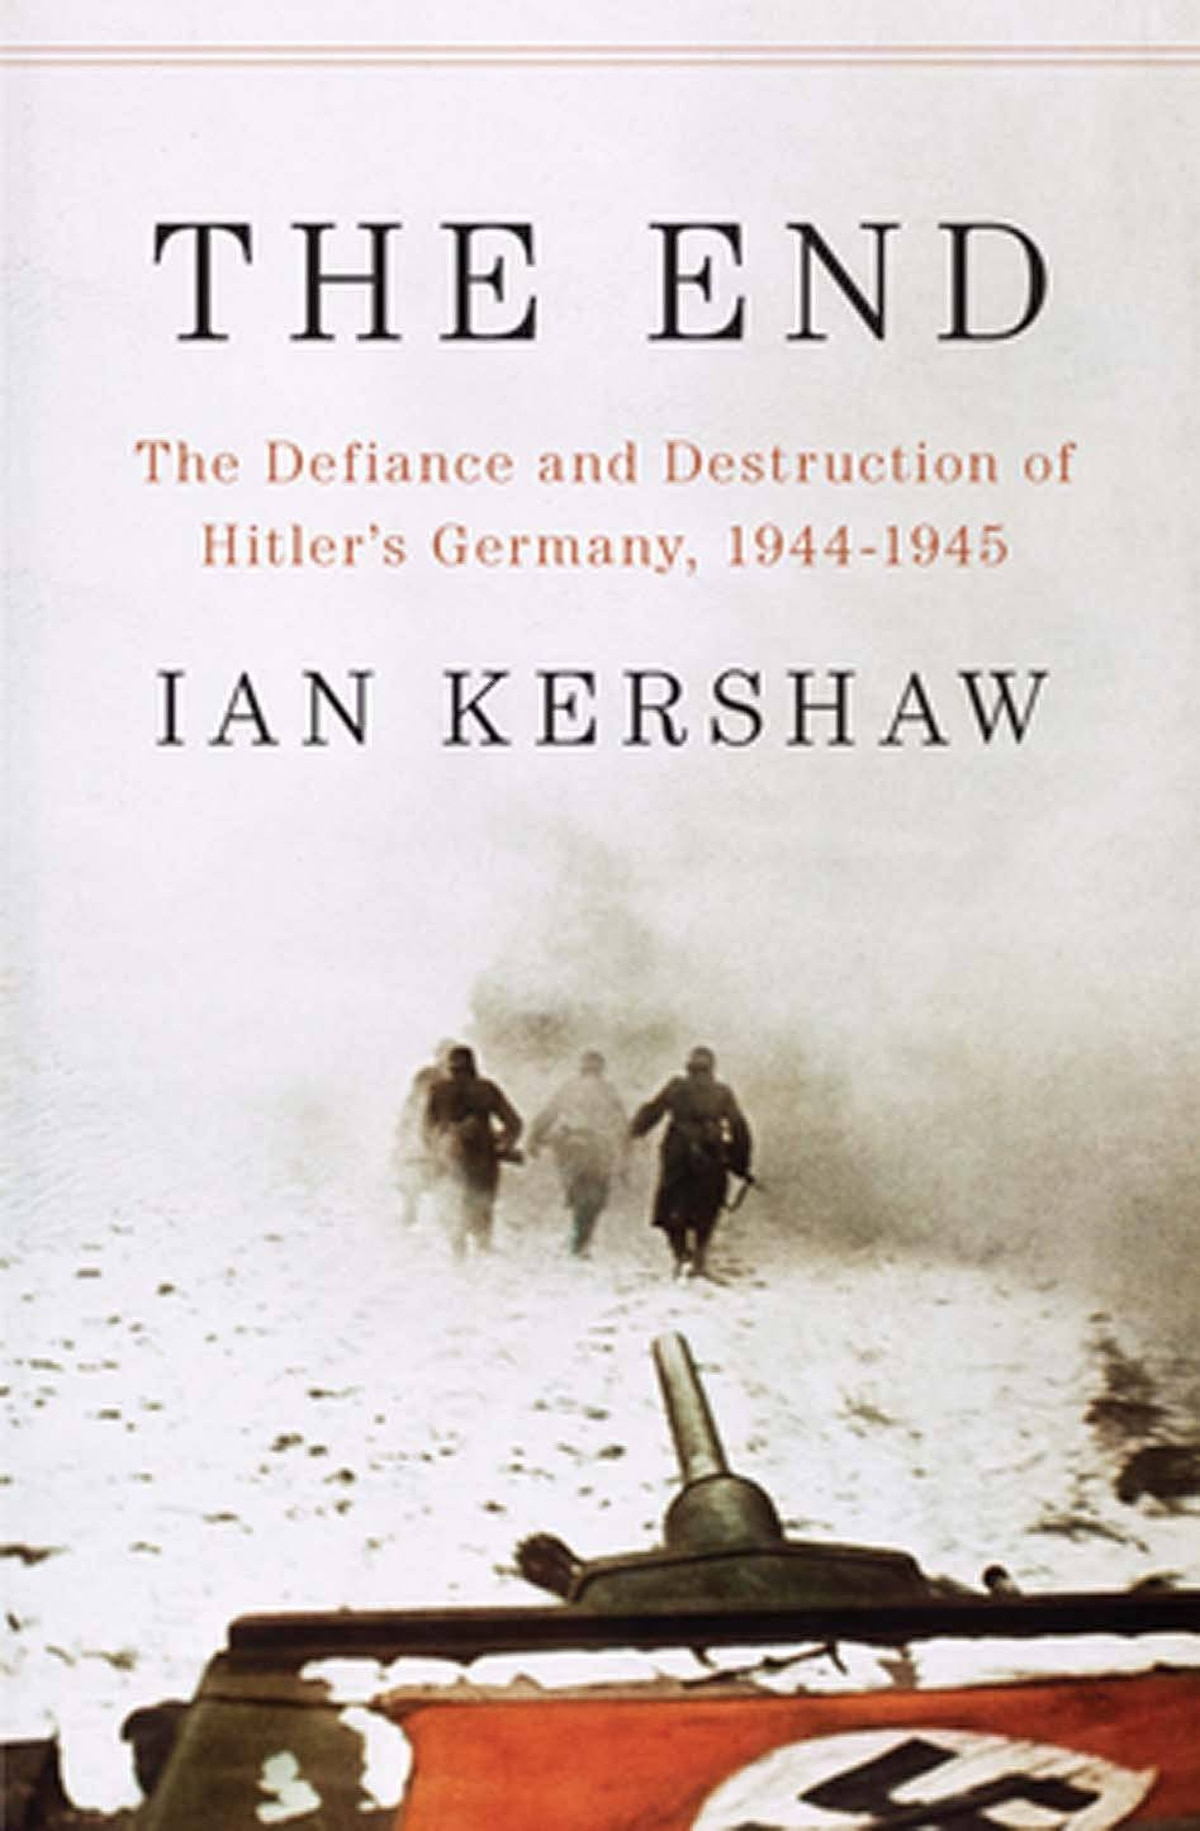 "THE END The Defiance and Destruction of Hitler's Germany, 1944-1945 By Ian Kershaw (Penguin Press) In this remarkable book, Kershaw (author of a definitive biography of Hitler) tells the story of the mass murder and homicidal suicide of the Third Reich in its final days with a mastery of detail so compelling that I could not put it down. A magnificent account of the ""twilight of the Nazi gods."" – Jonathan Steinberg"